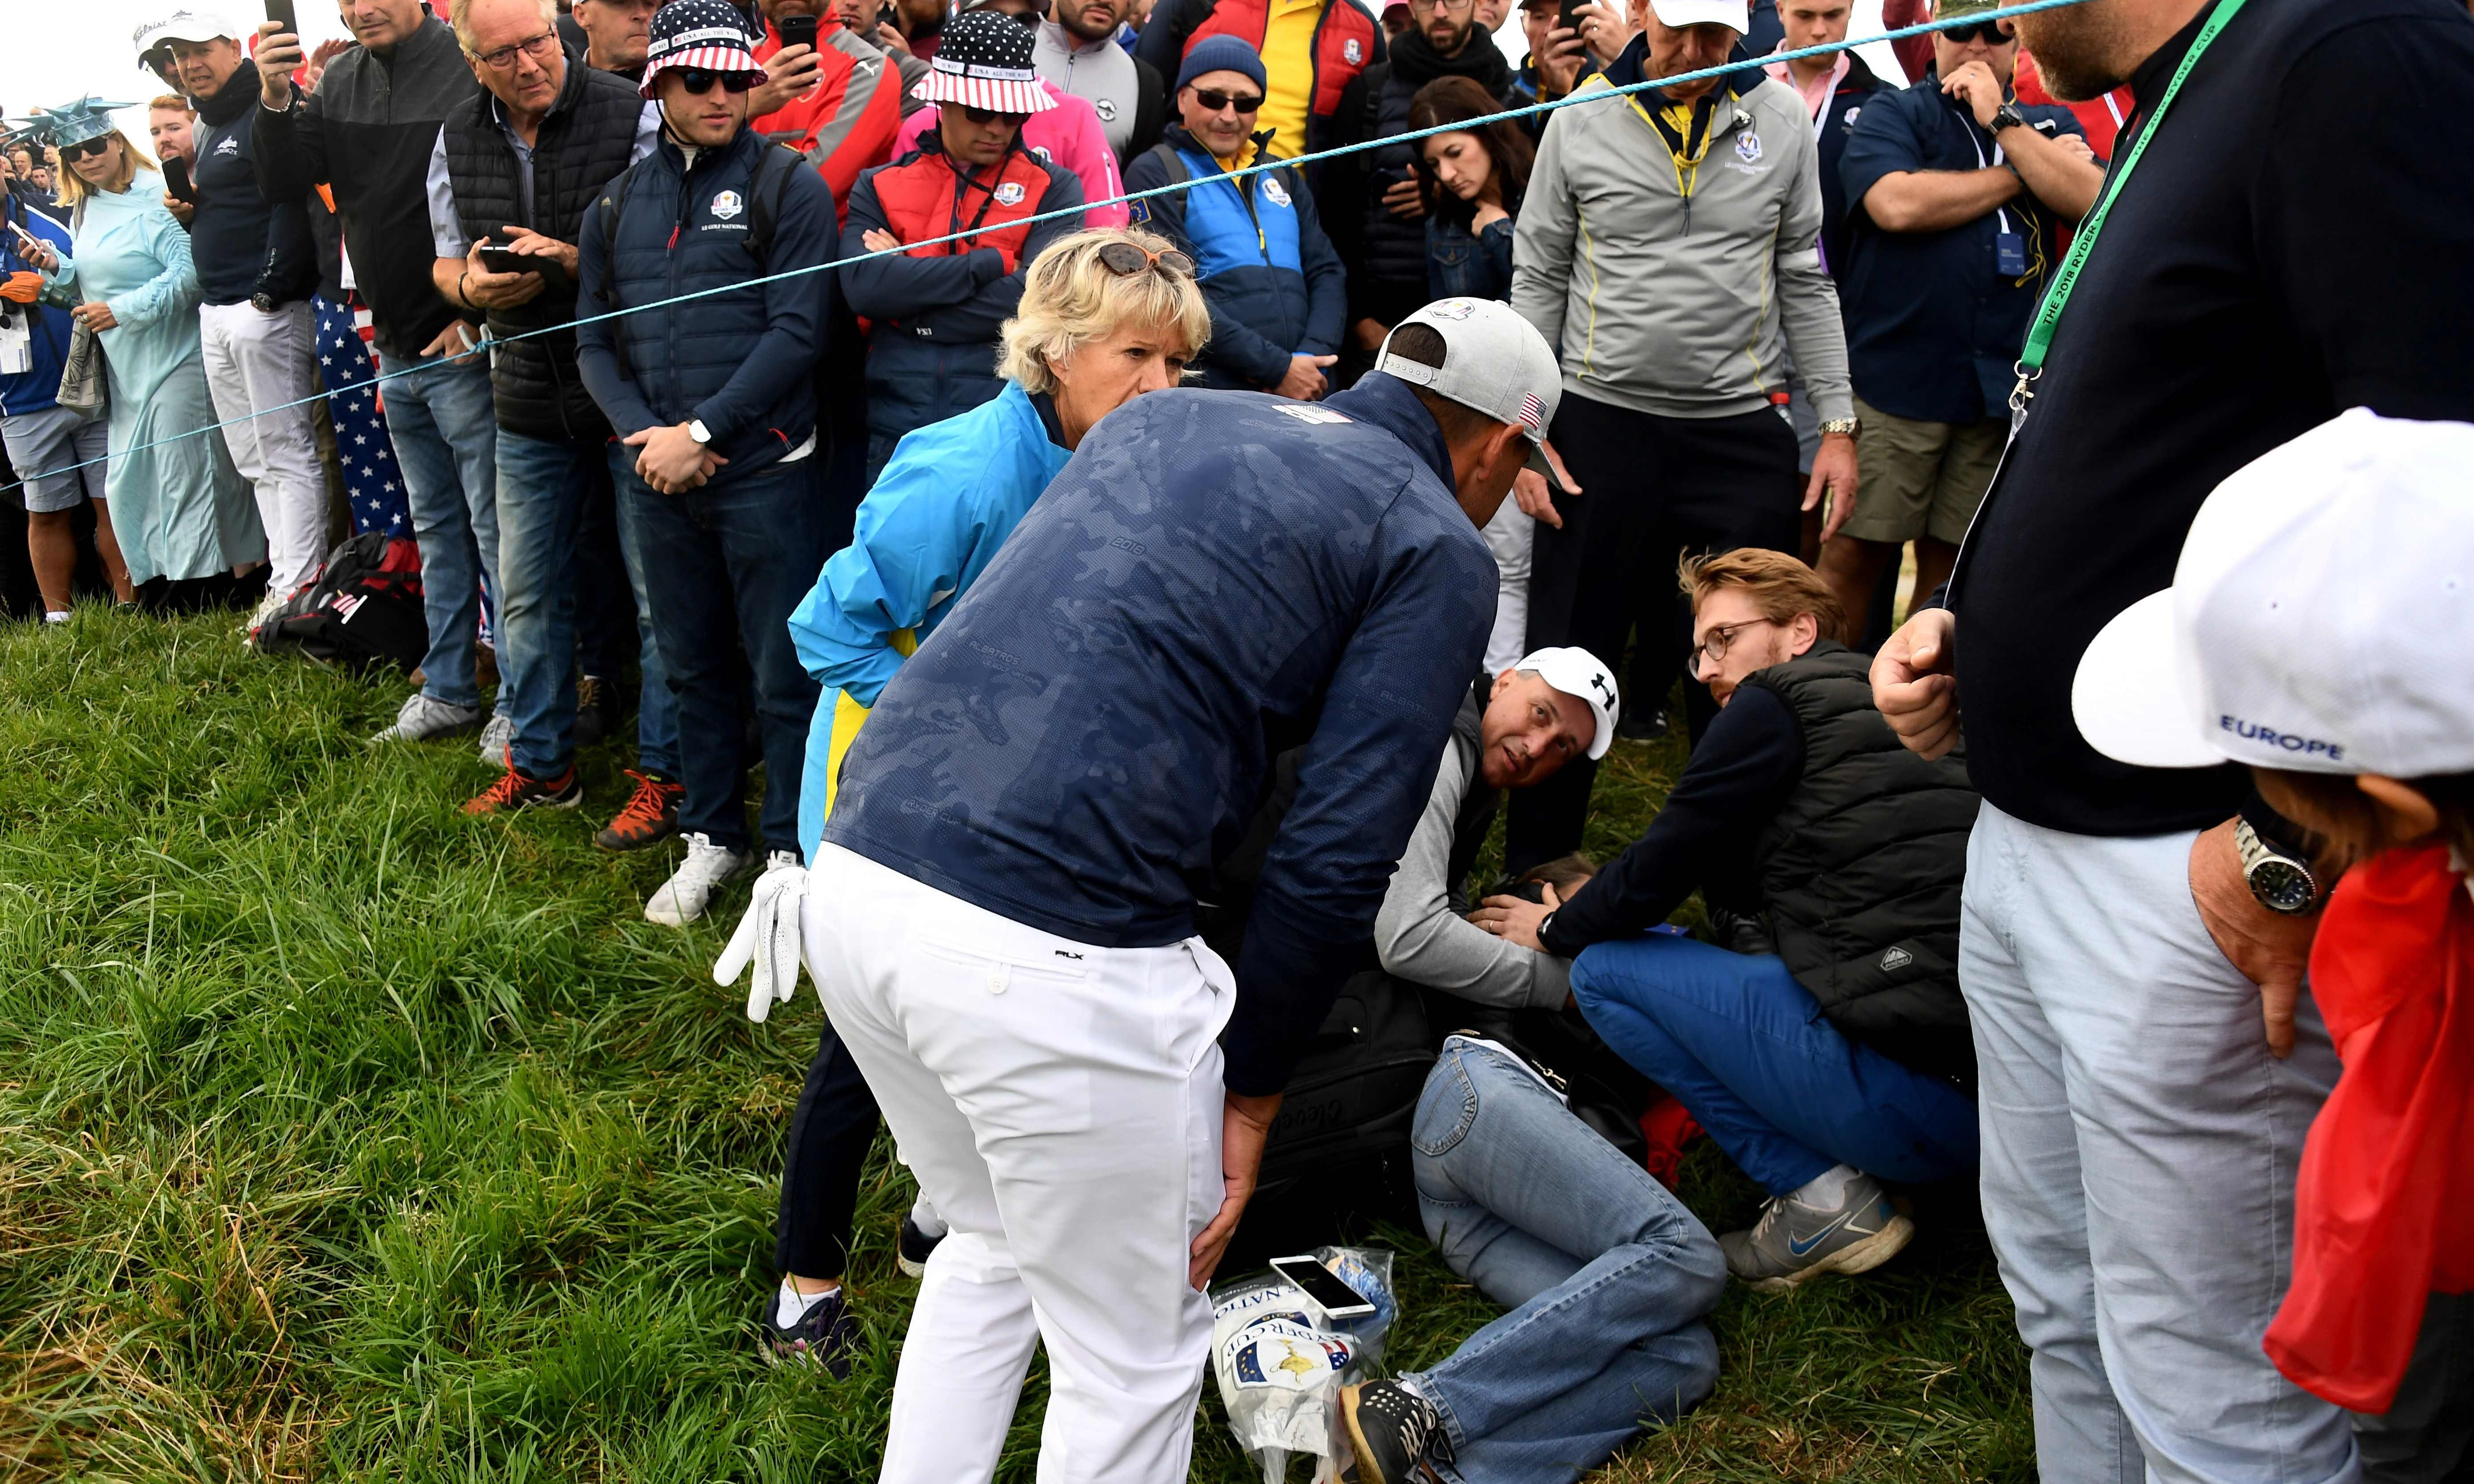 Spectator loses sight in eye after being hit by Brooks Koepka shot at Ryder Cup